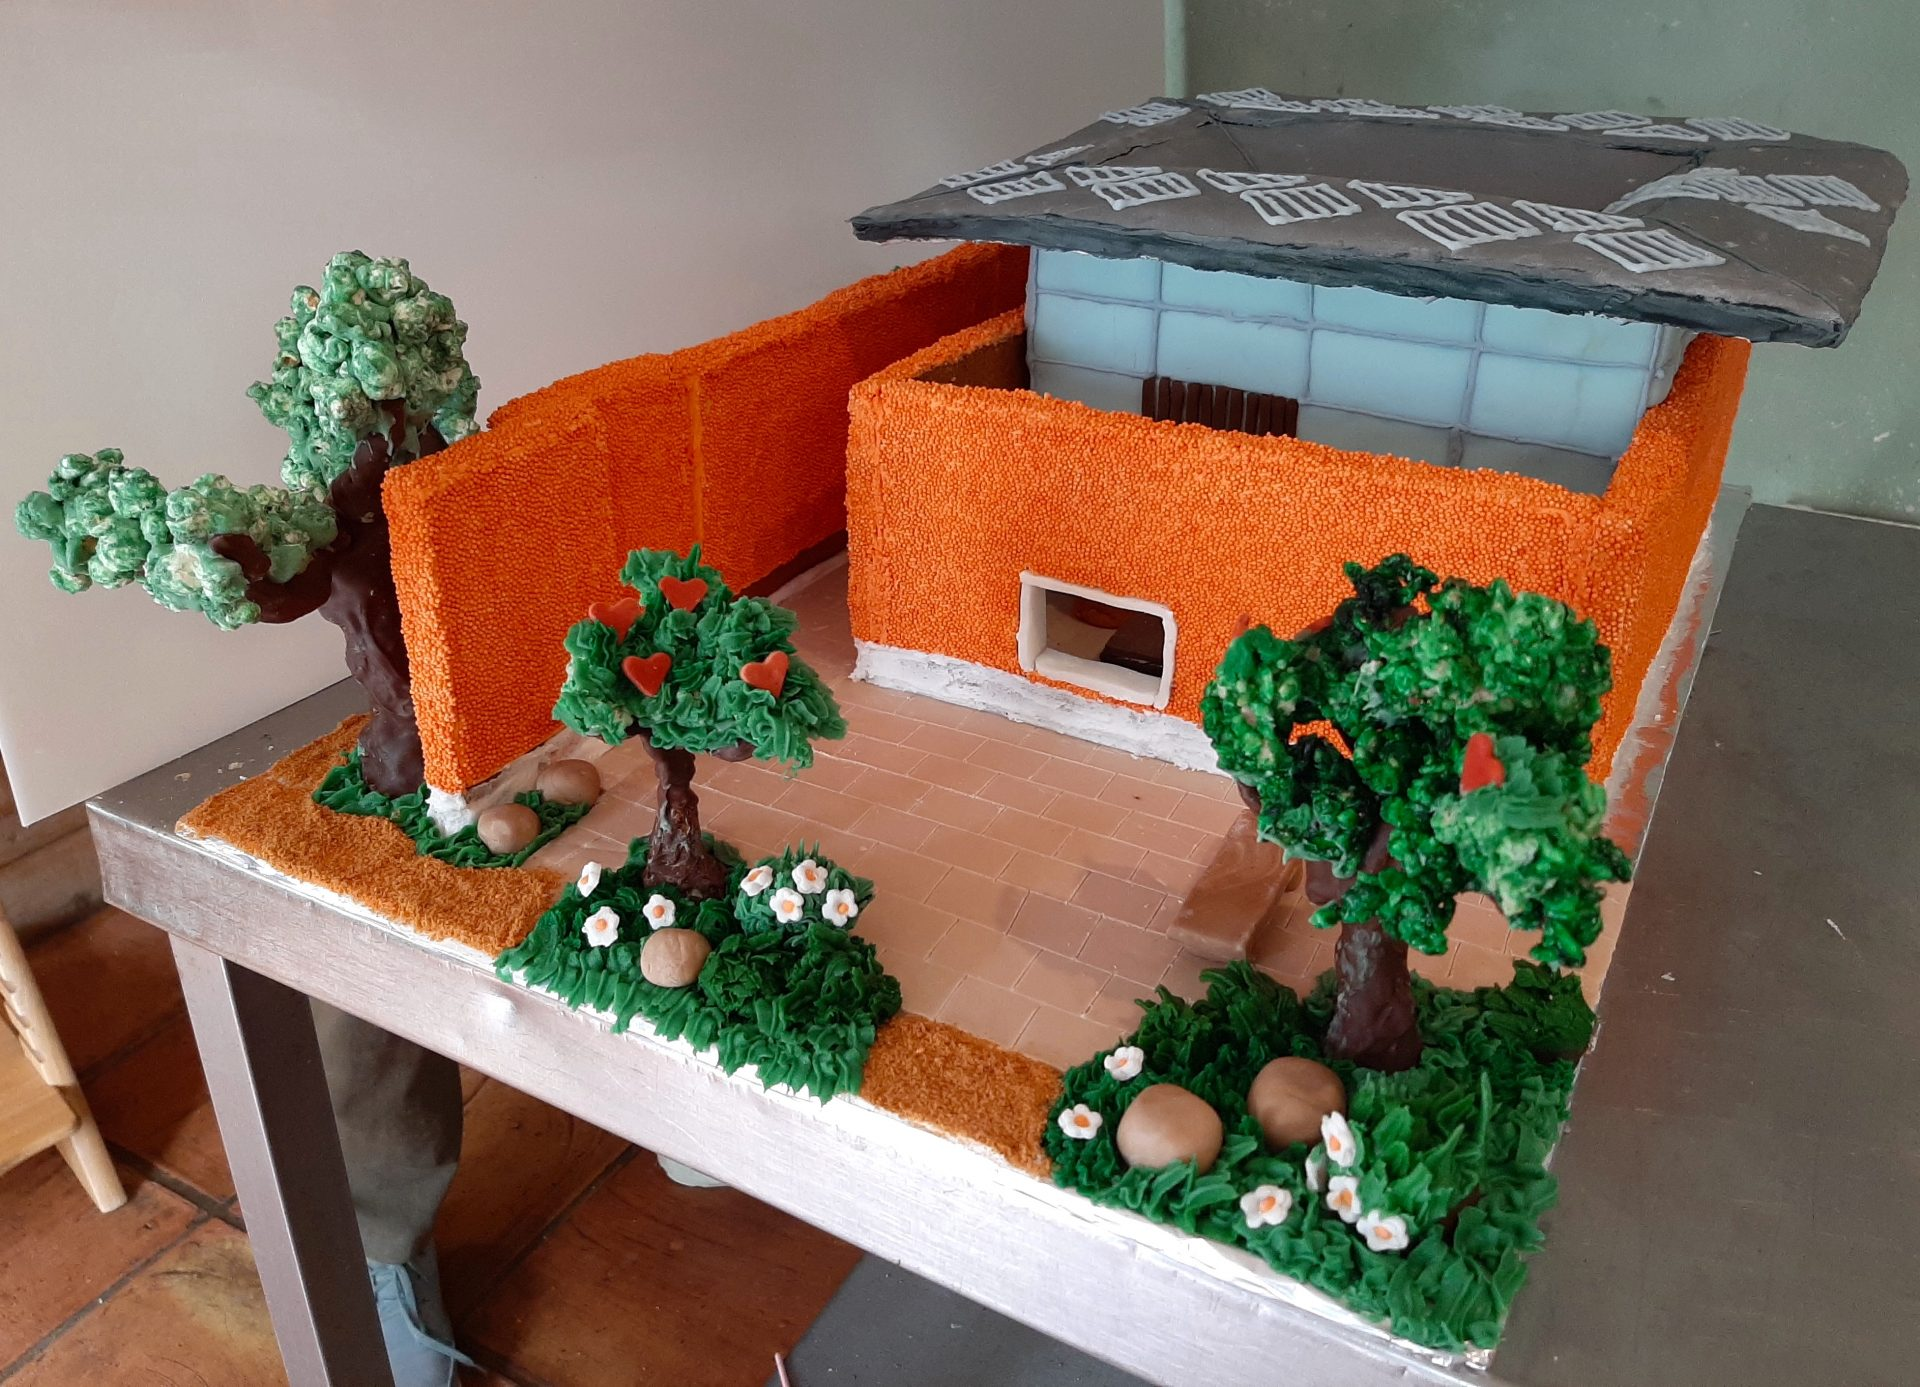 Architecture Bake Off 2021: The Shortlist